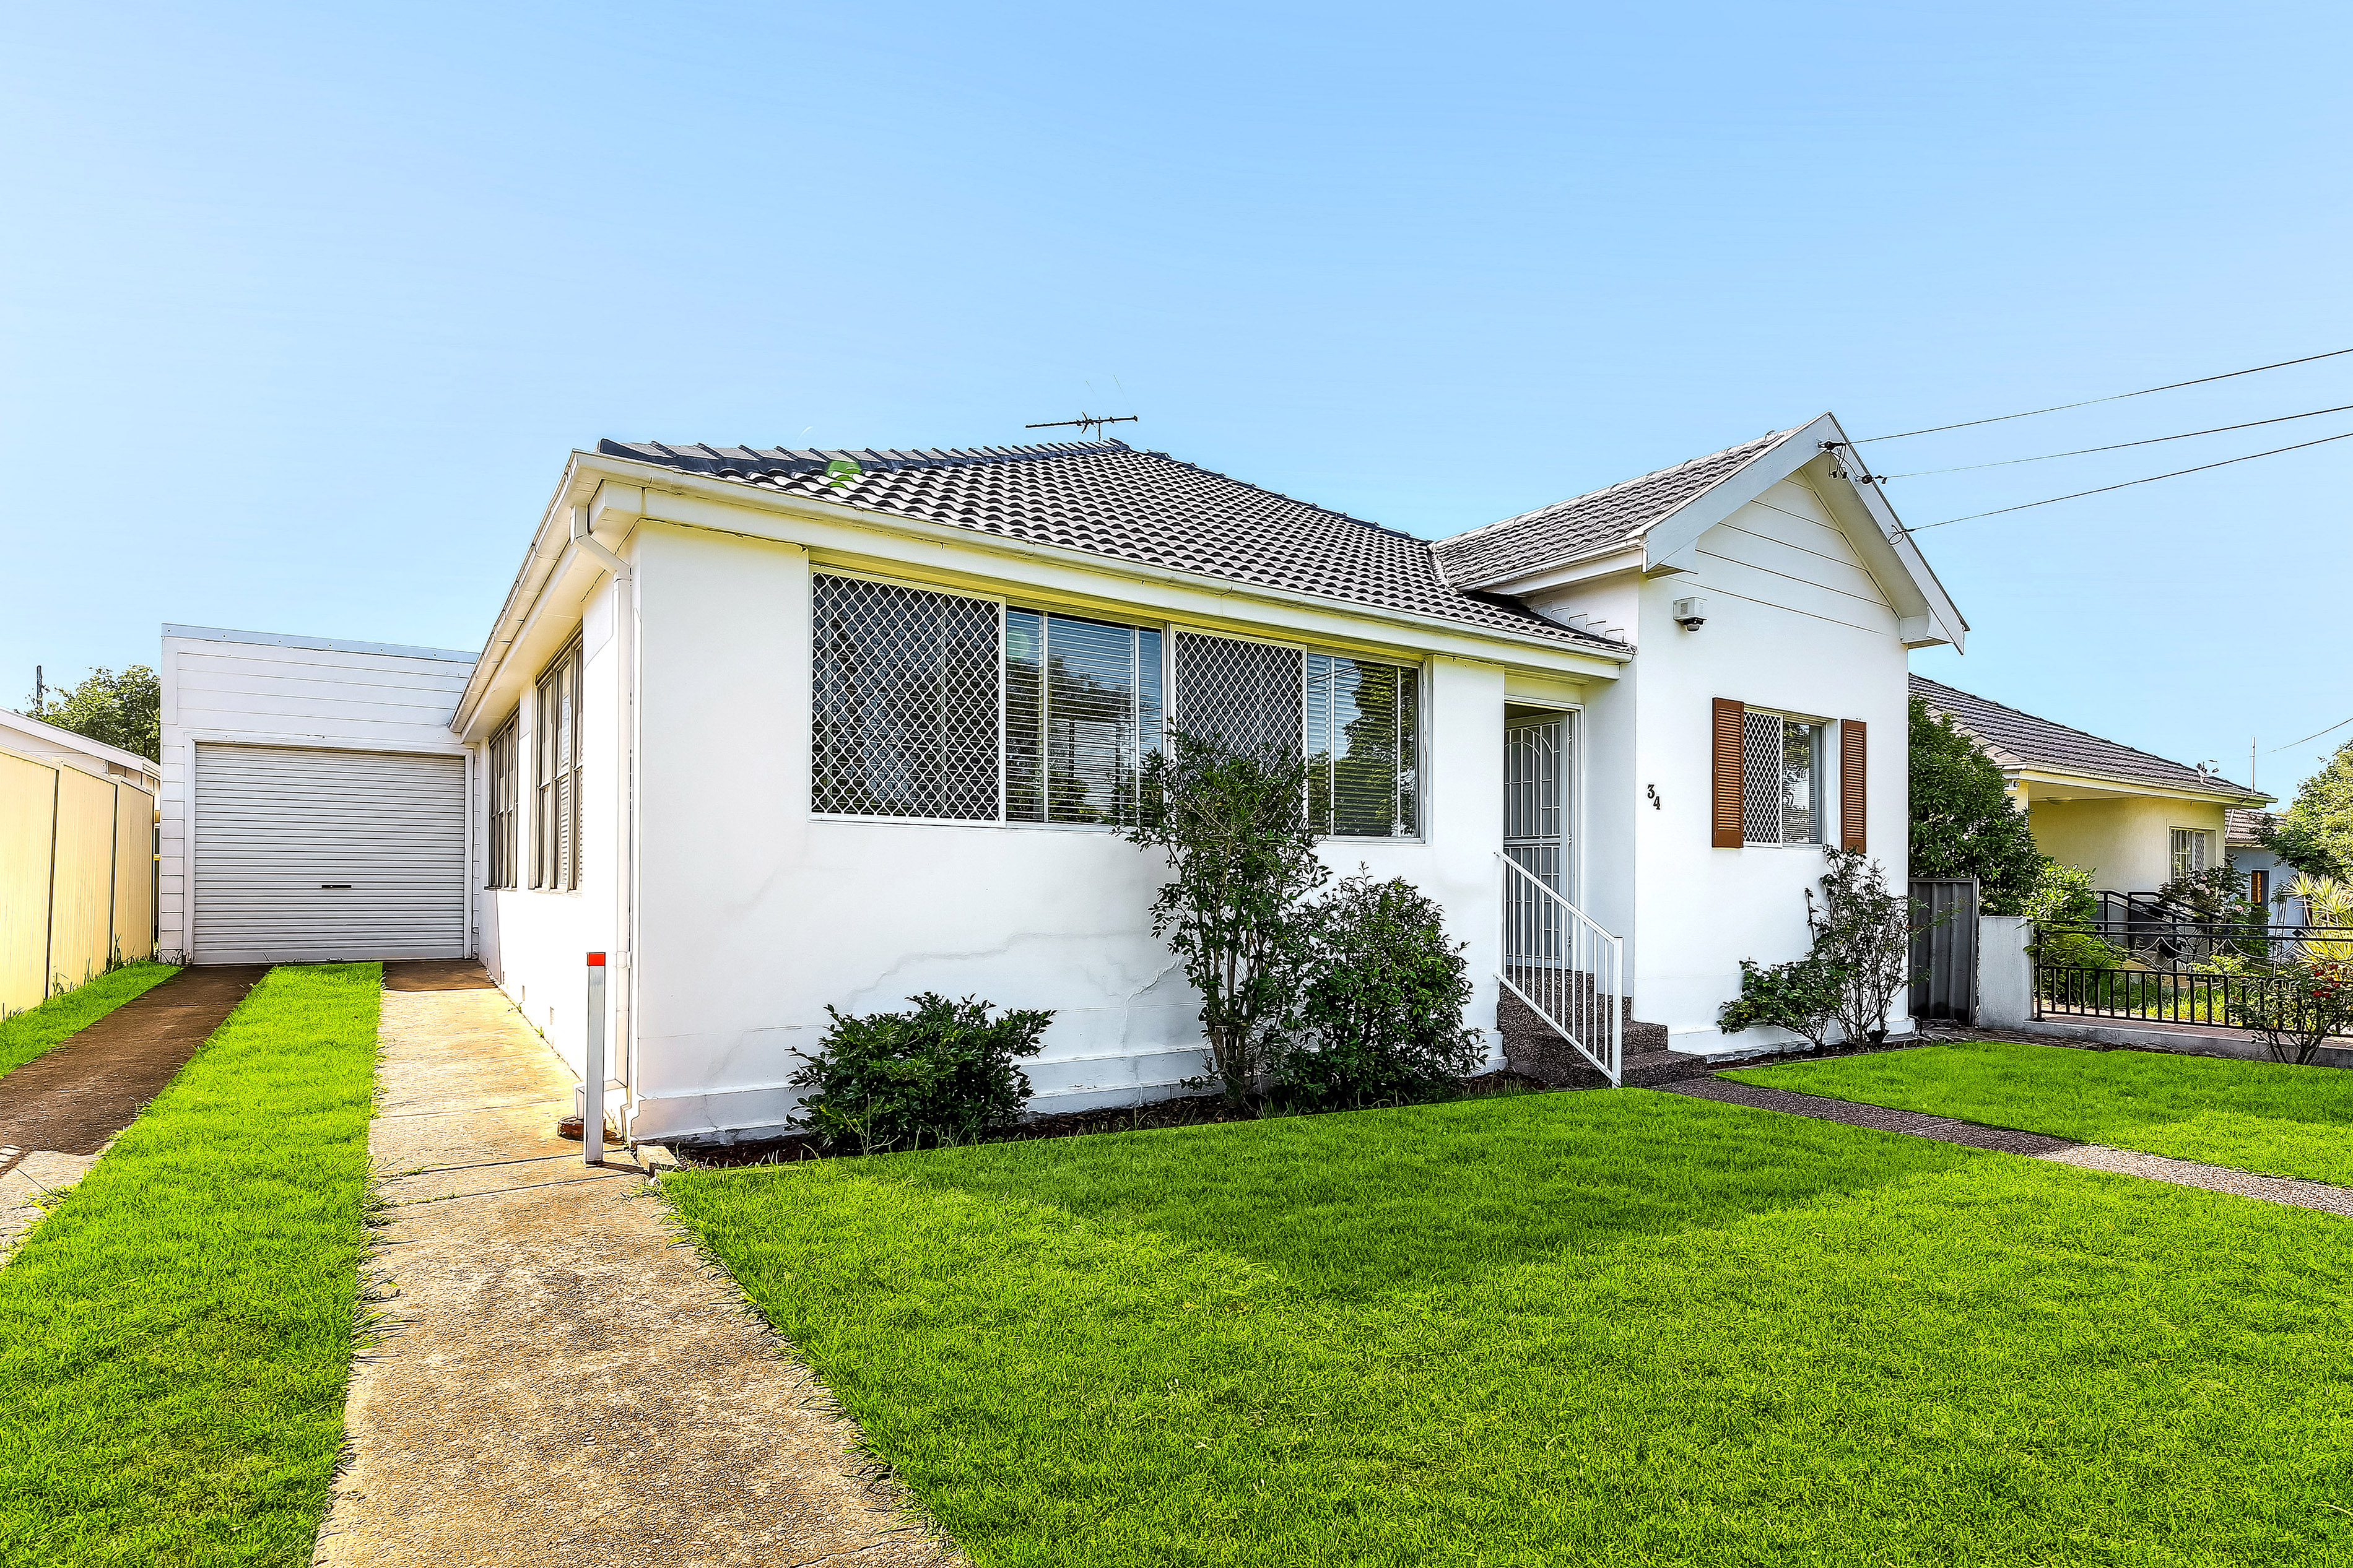 BRICK HOME ON BIG LAND, OPPORTUNITY AWAITS - AUCTION CANCELLED - PROPERTY SOLD